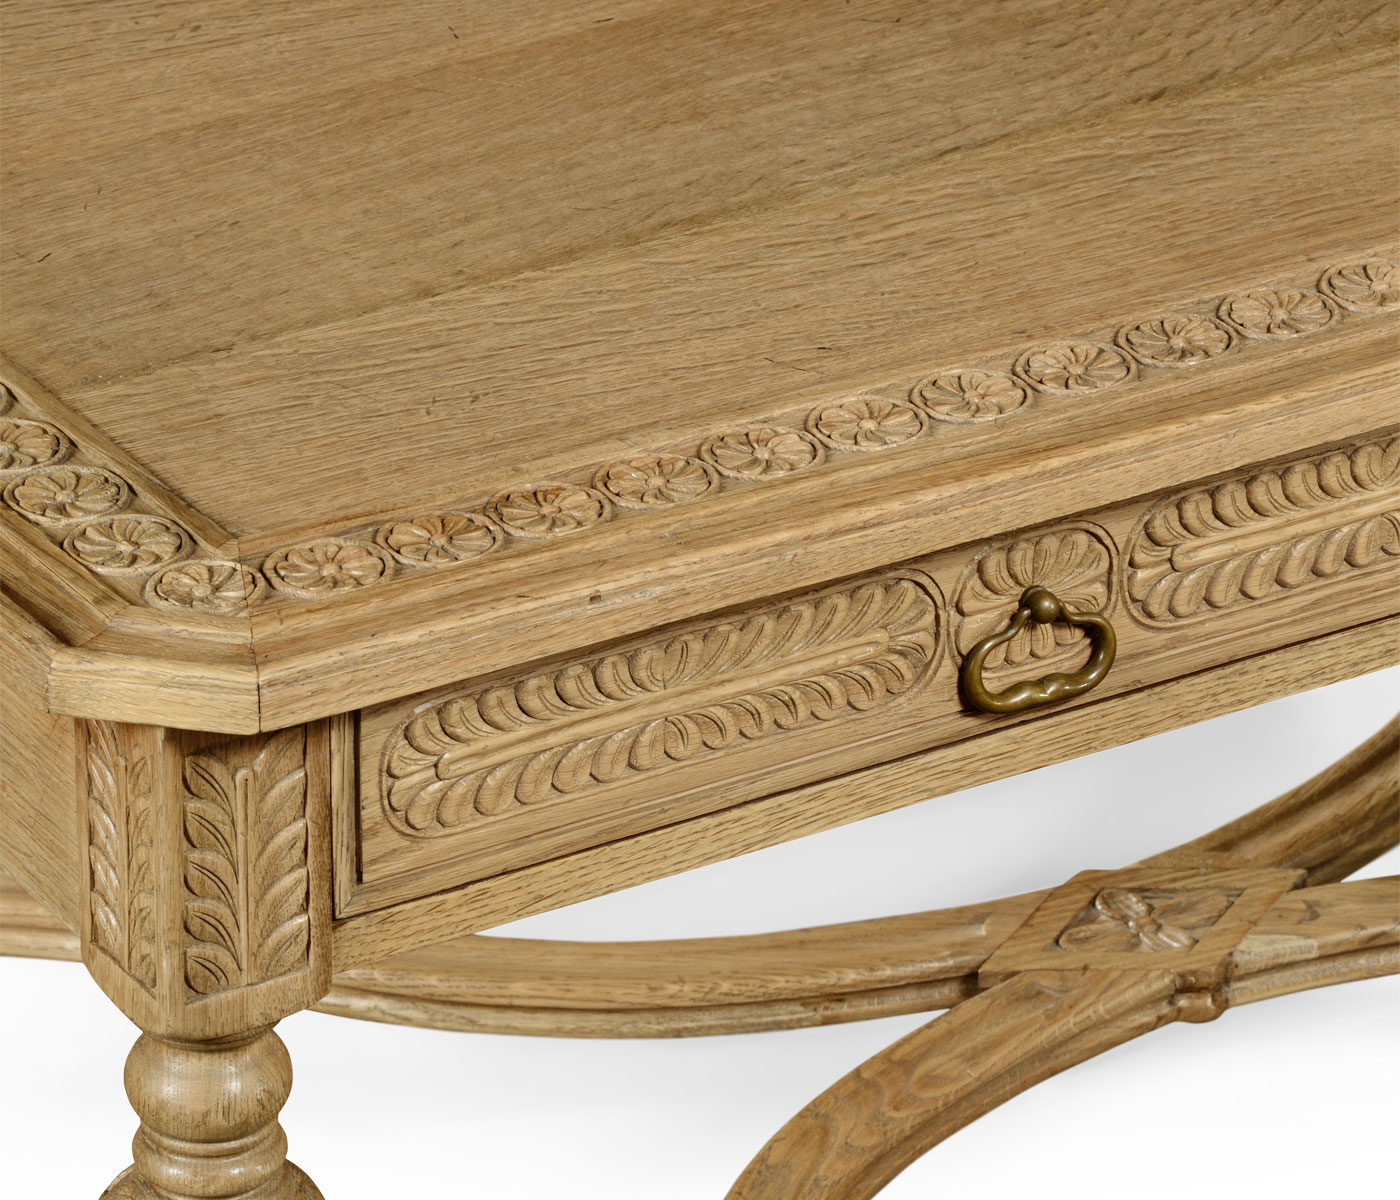 Natural oak chip carved rectangular coffee table